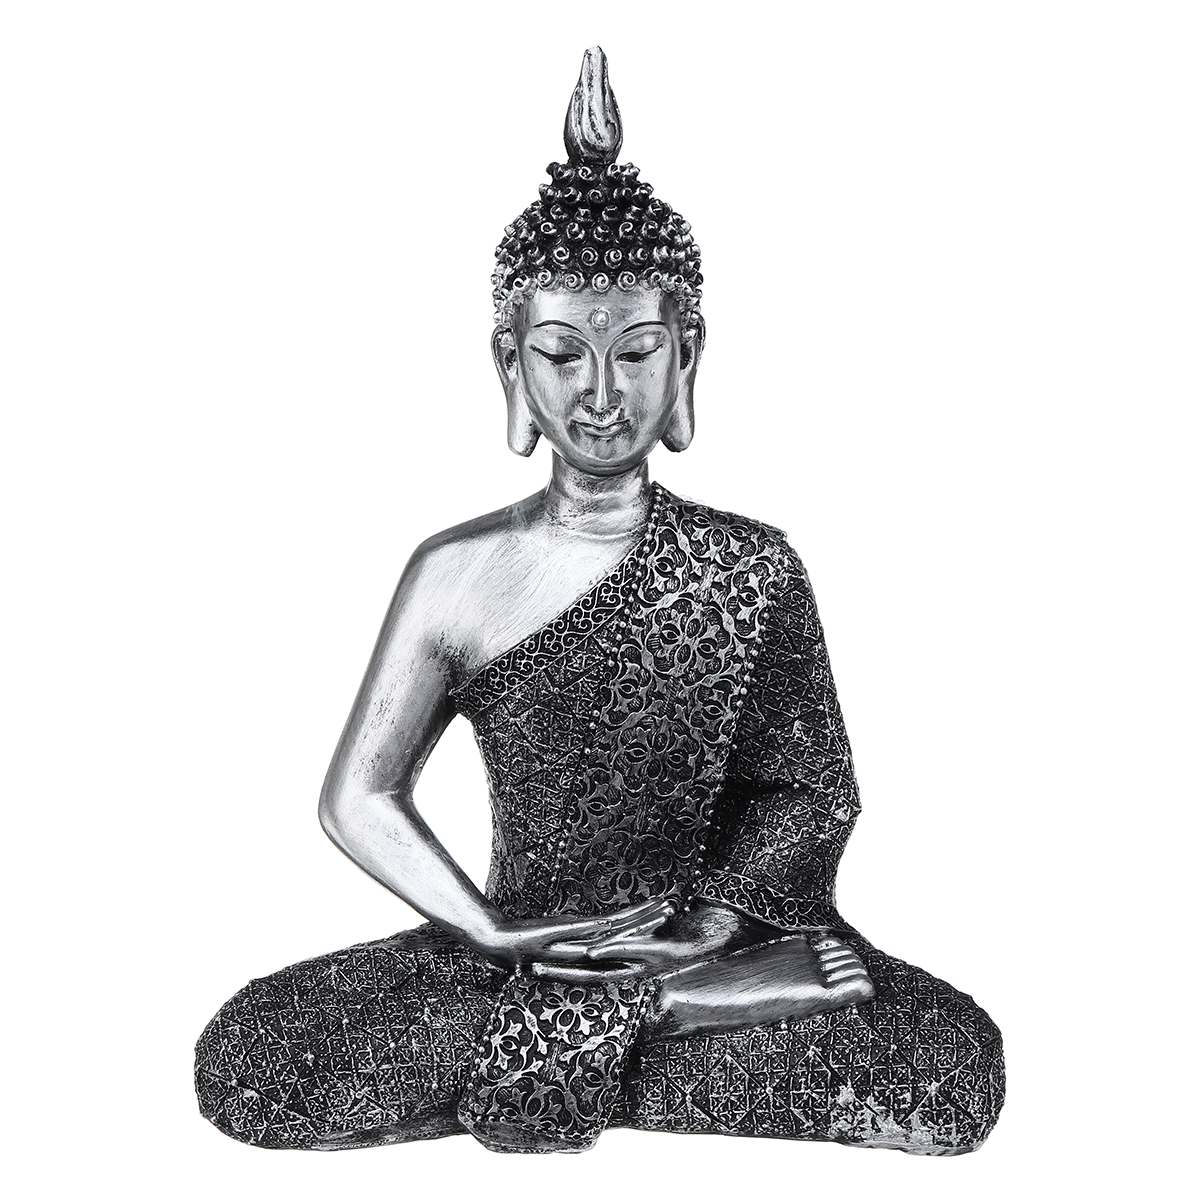 22*10*28cm Buddha Statue Meditation Thailand Feng Shui Sculpture Buddhism Figurine Budda Miniature Home Decor Ornaments Gift